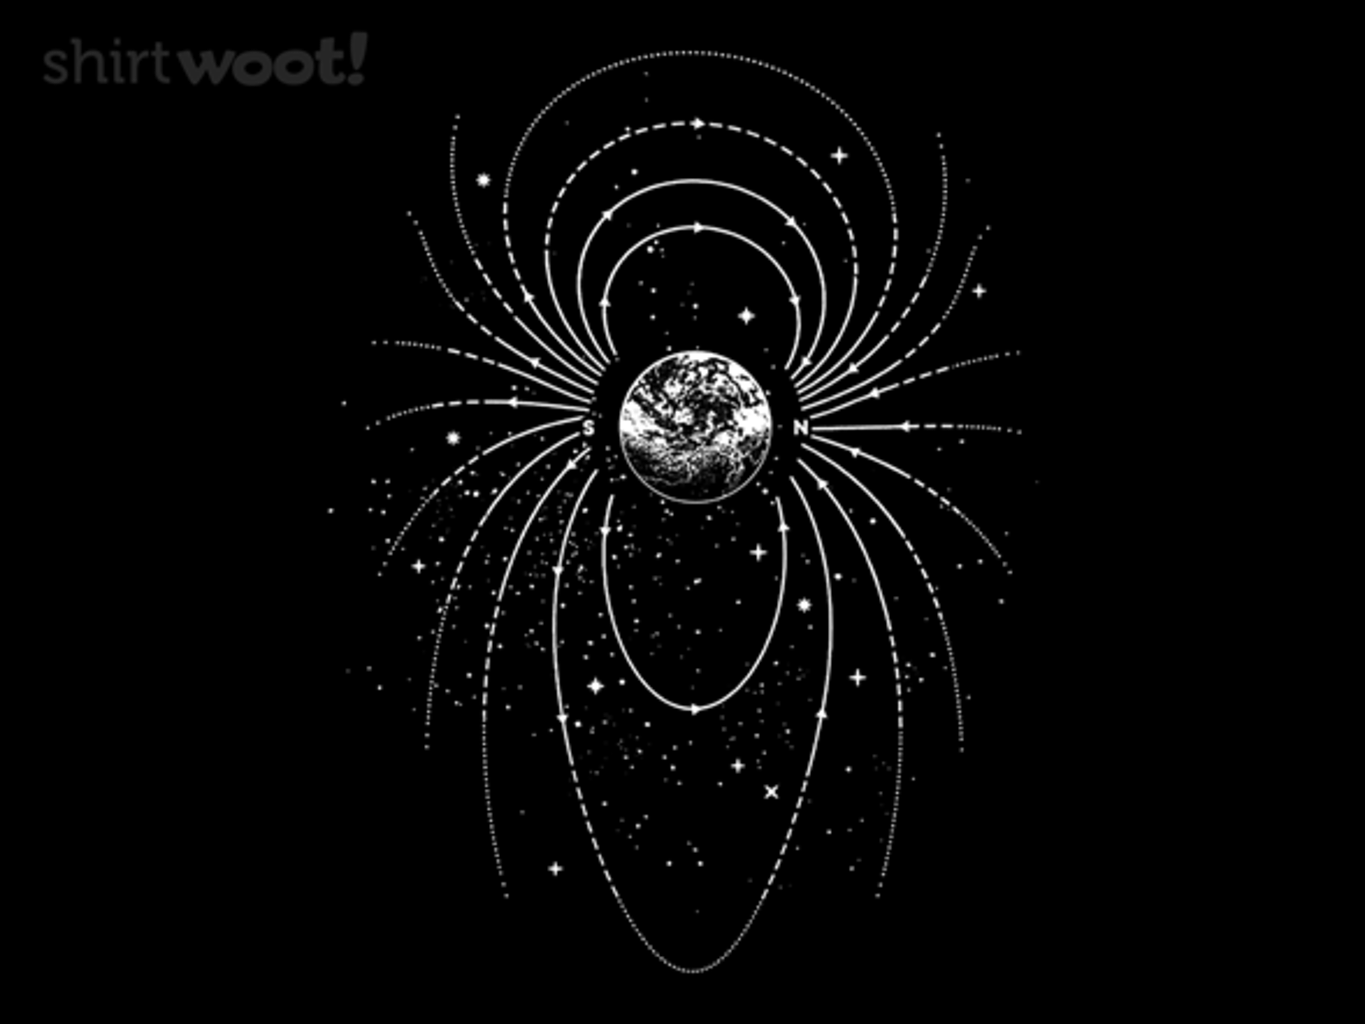 Woot!: Magnetosphere